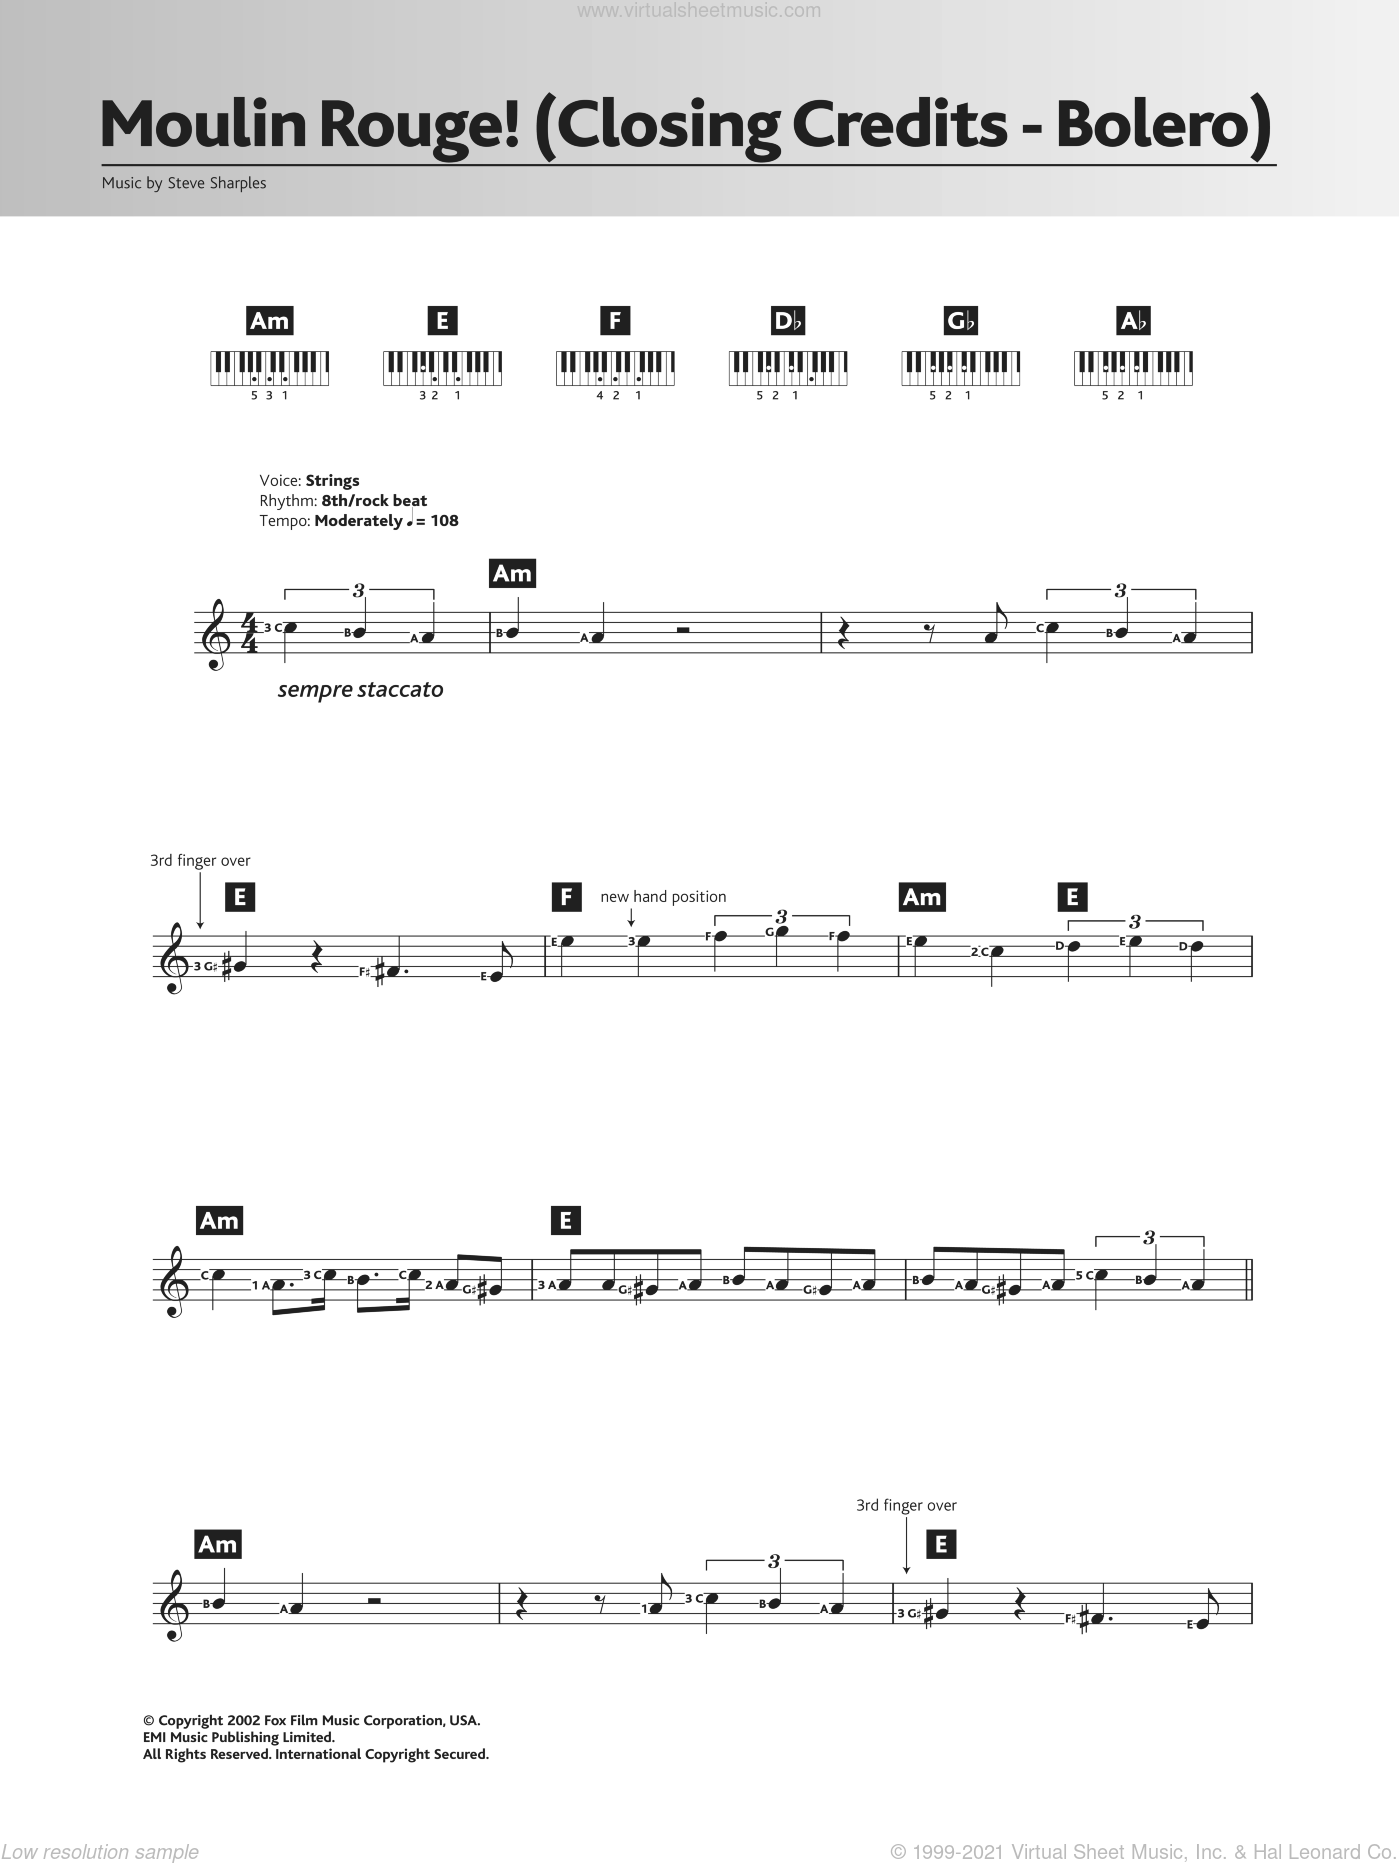 Bolero (Closing Credits from 'Moulin Rouge') sheet music for piano solo (chords, lyrics, melody) by Steve Sharples